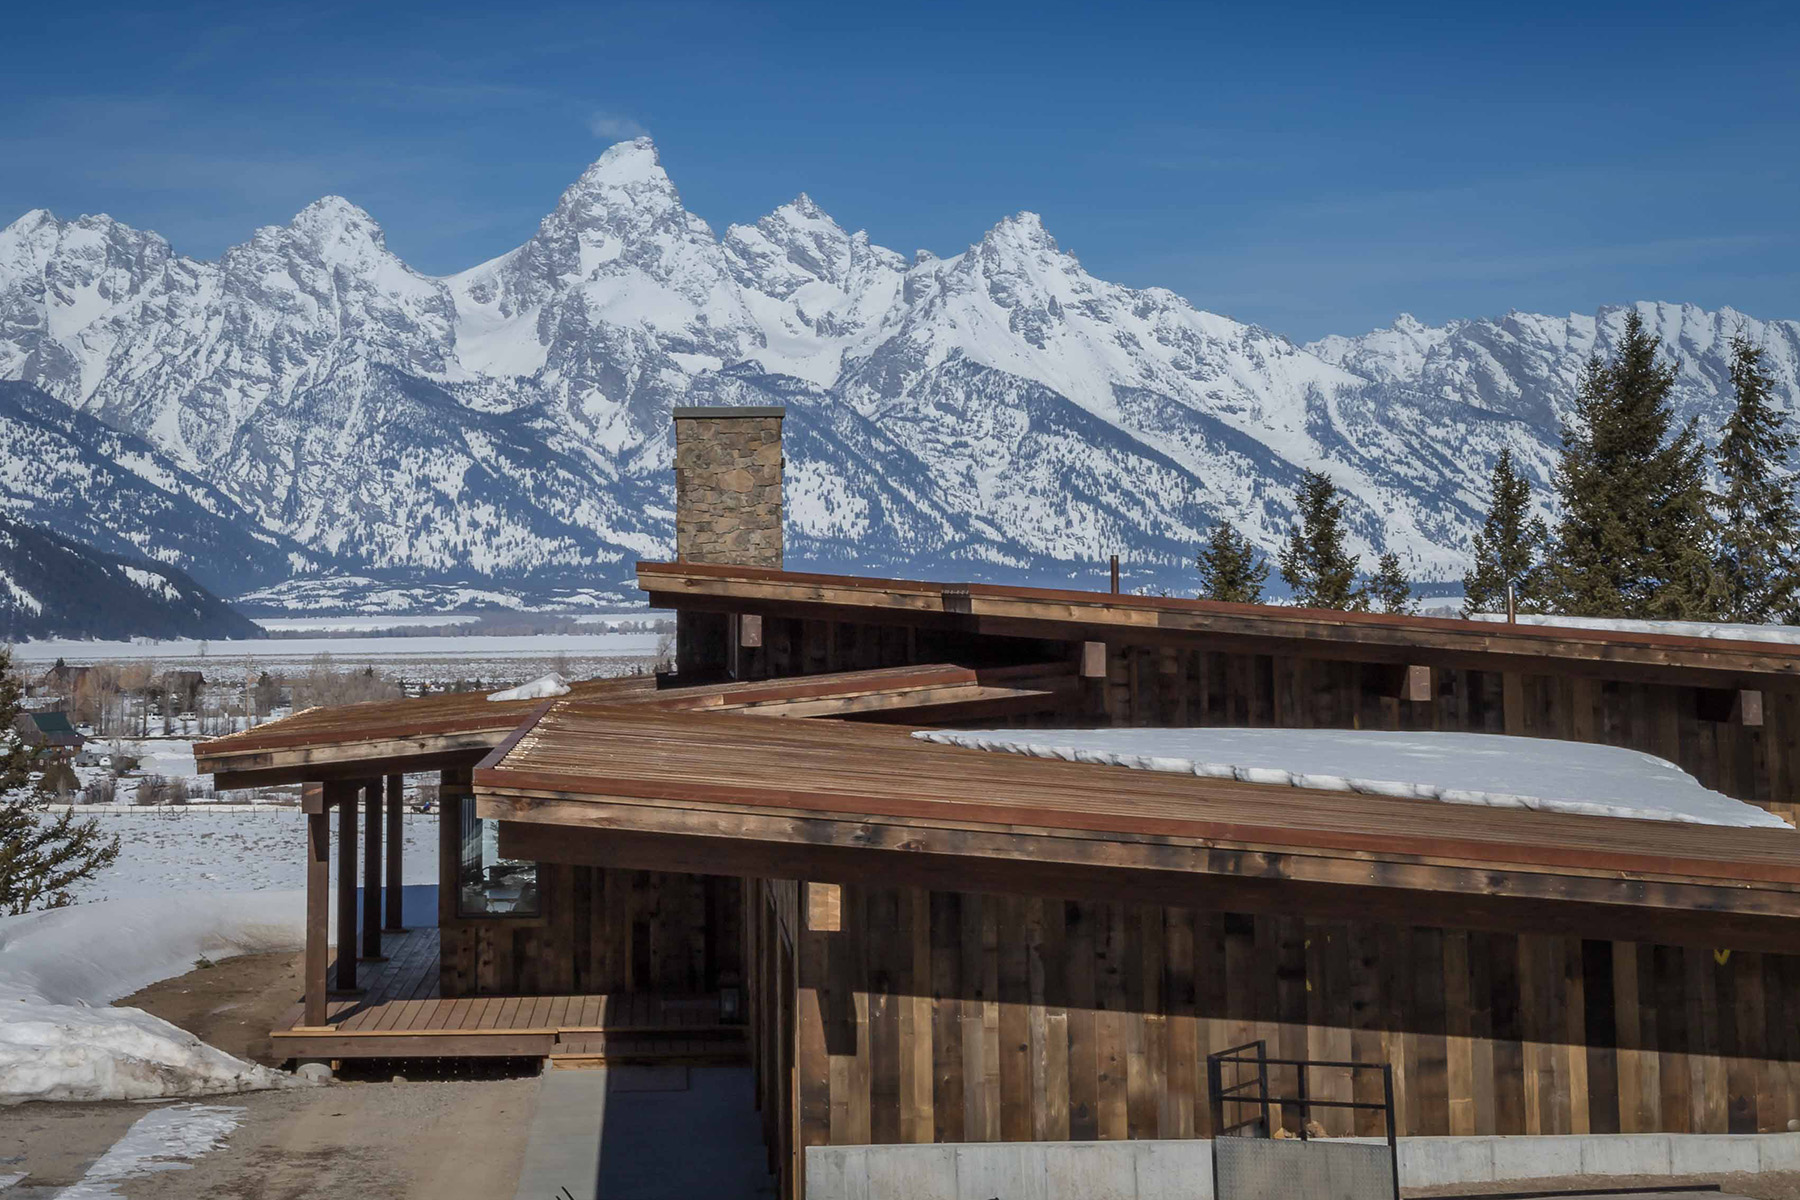 Single Family Homes for Active at 7662 E TETON VALLEY RANCH ROAD 7662 E. TetonValley Ranch Road Kelly, Wyoming 83011 United States